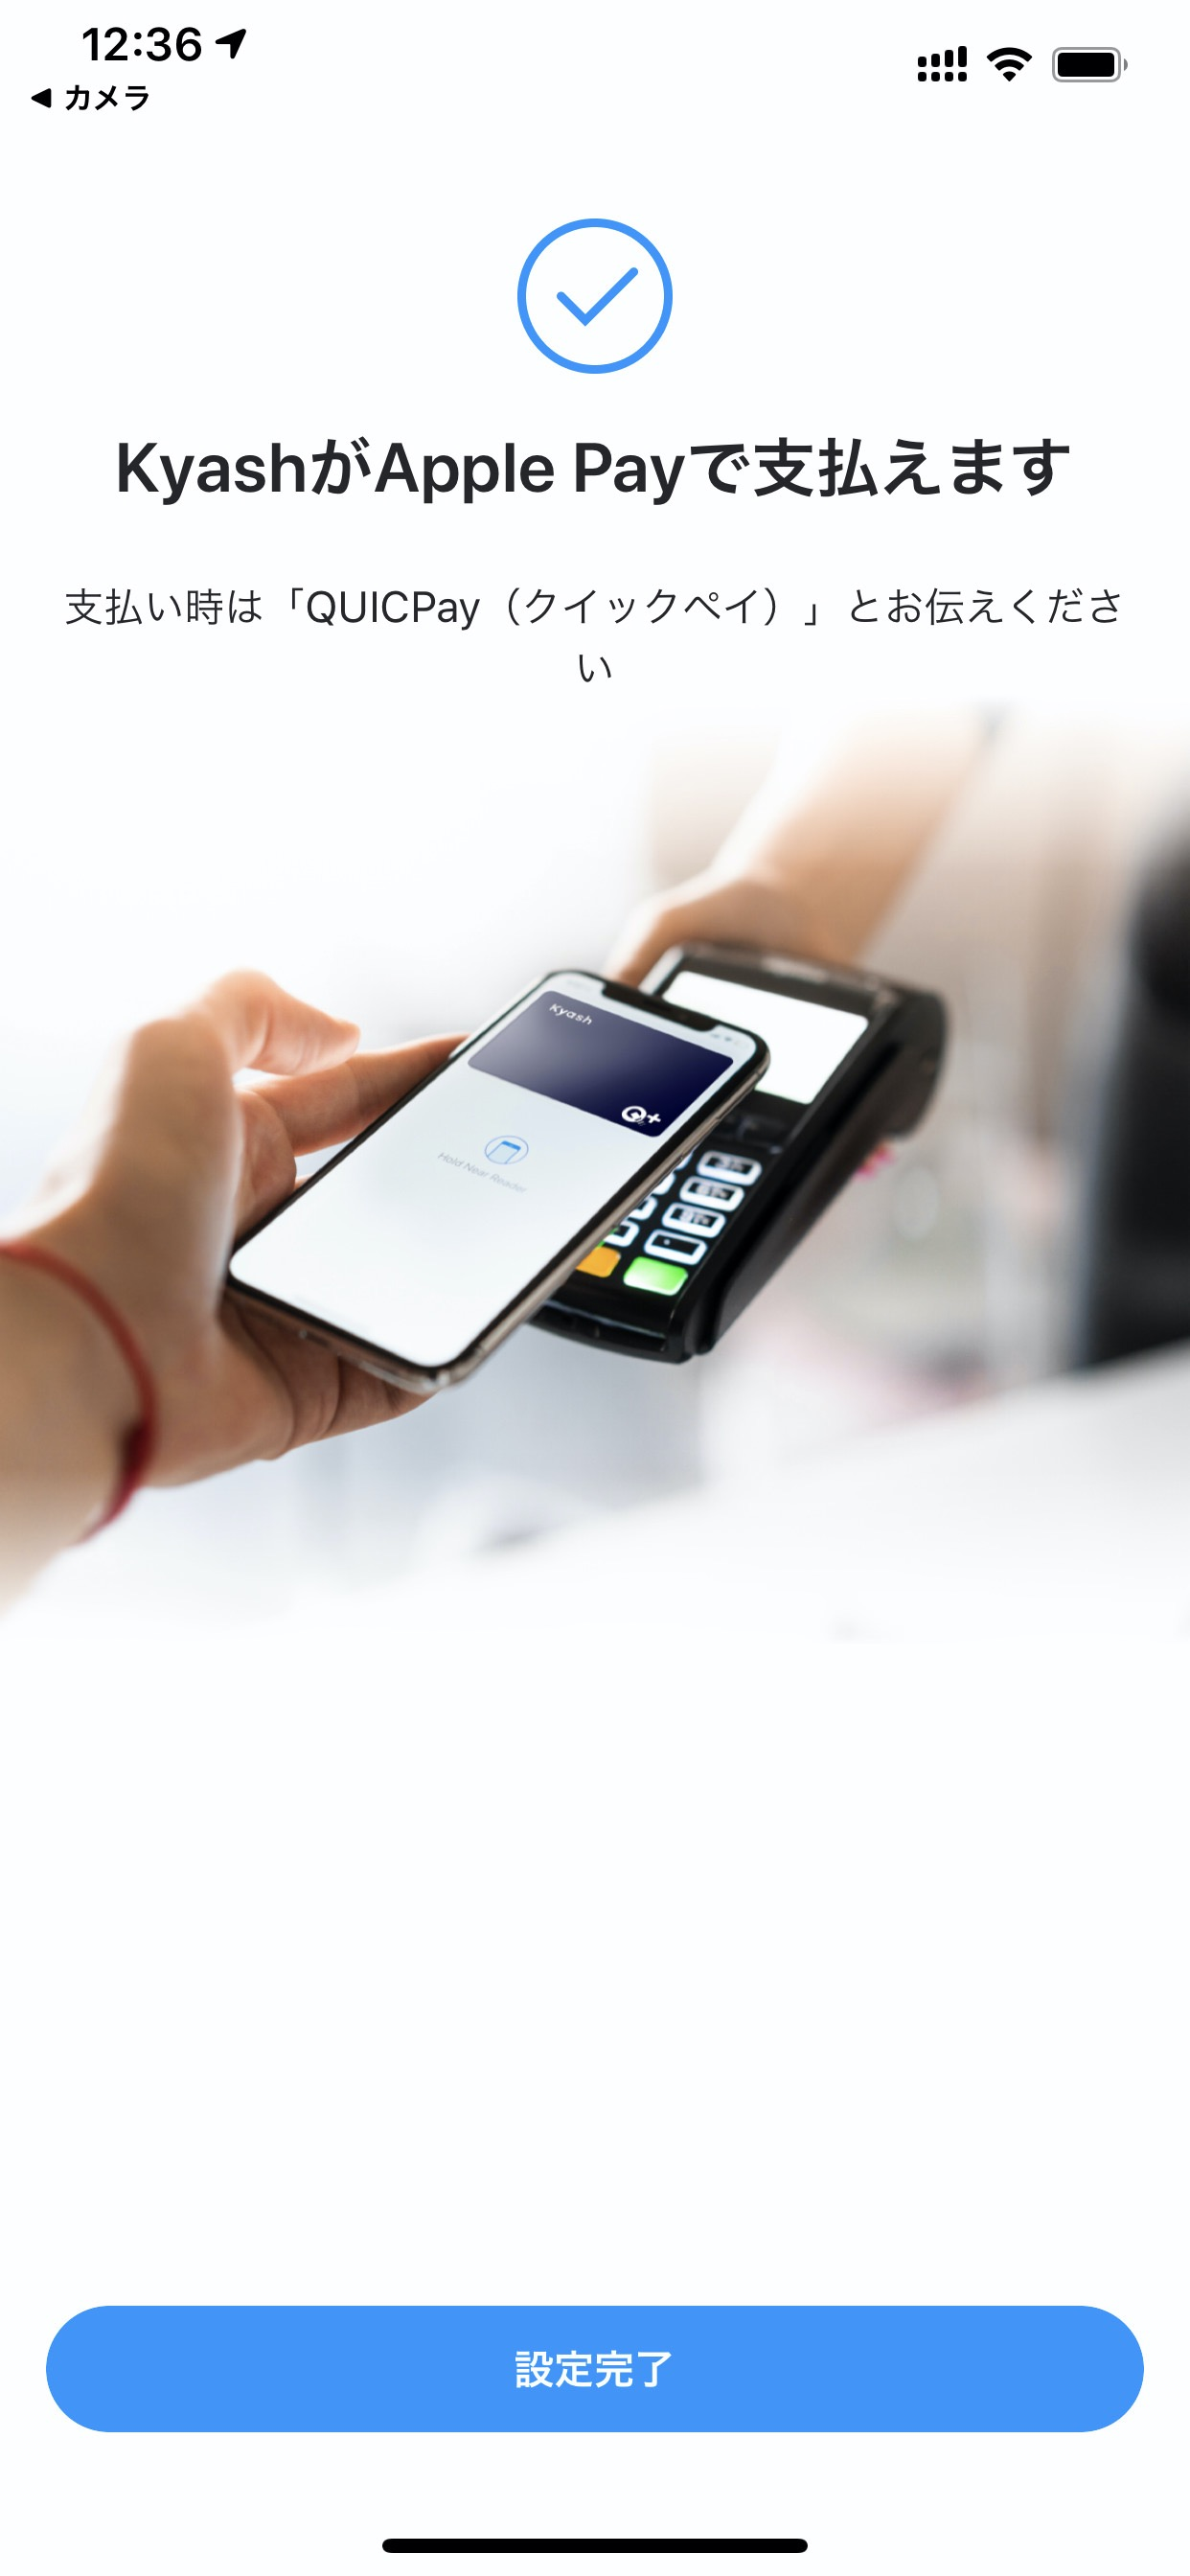 「Kyash Card」カード有効化&Apple Pay 15